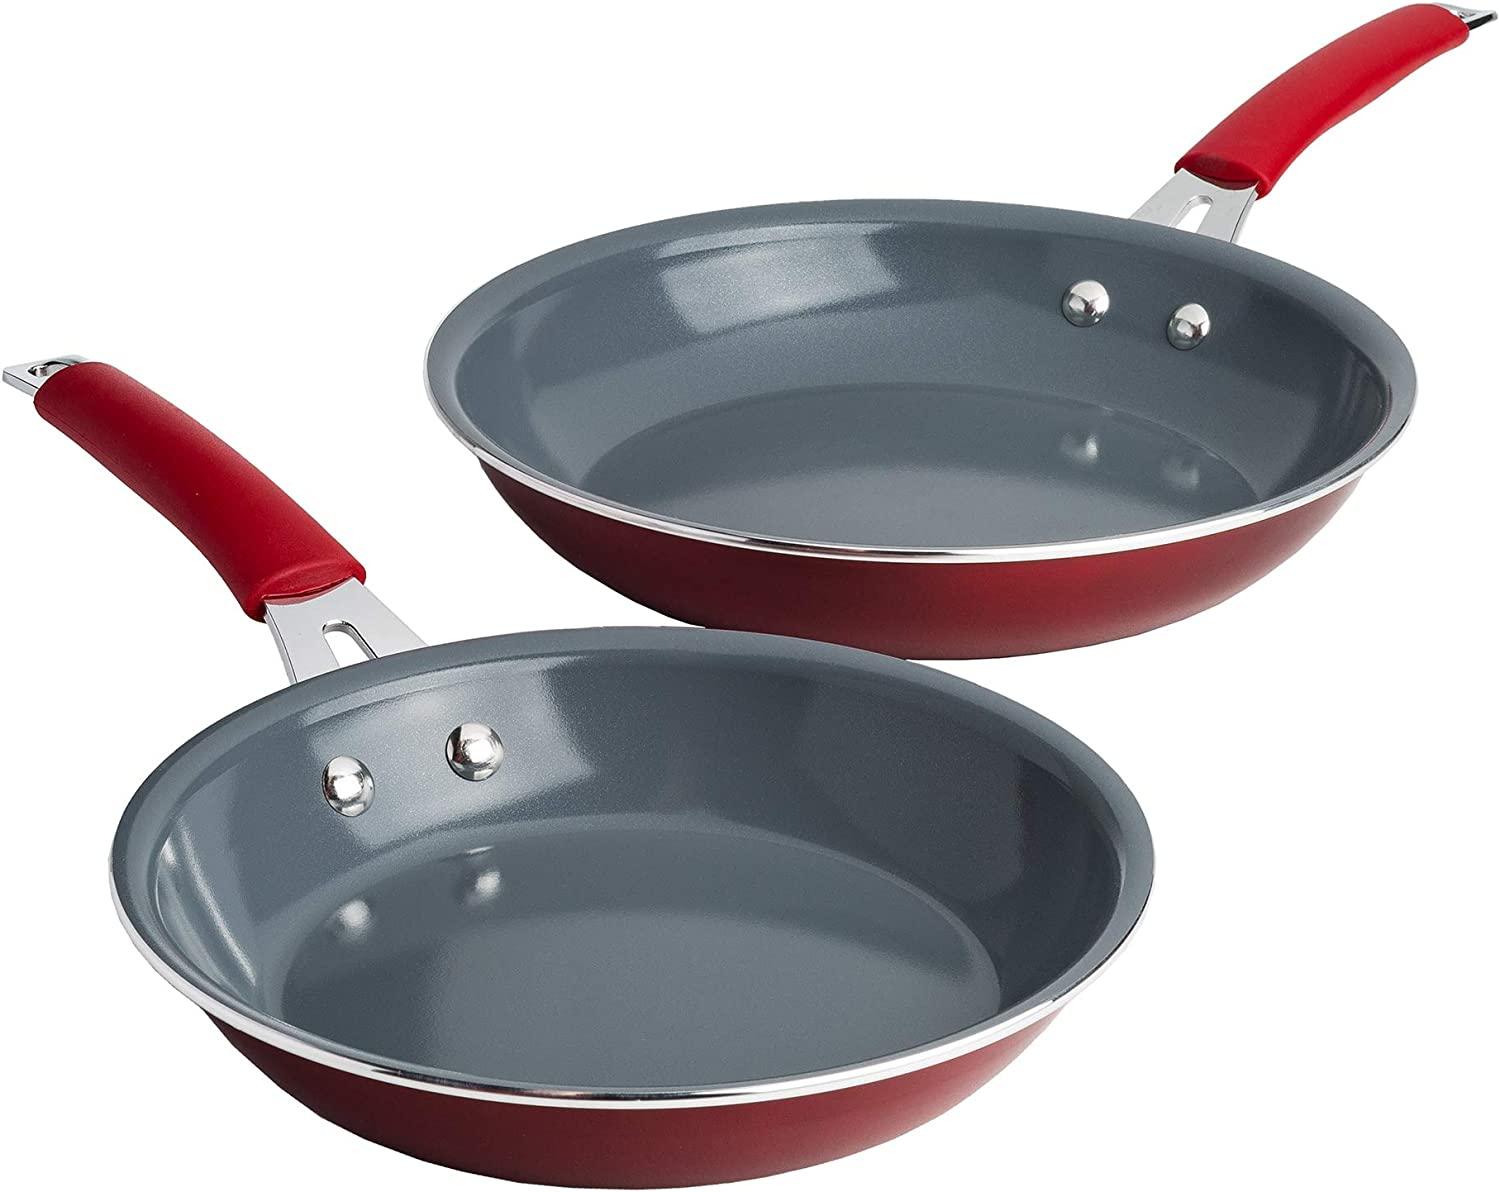 Cooking Light Allure Premier Ceramic Non-Stick Coating Cookware, 8 inch and 9.5 inch Skillet Set, Multipurpose Use, Silicone Stay Cool Handle, Easy Clean, 2 Piece Fry Pan, Red